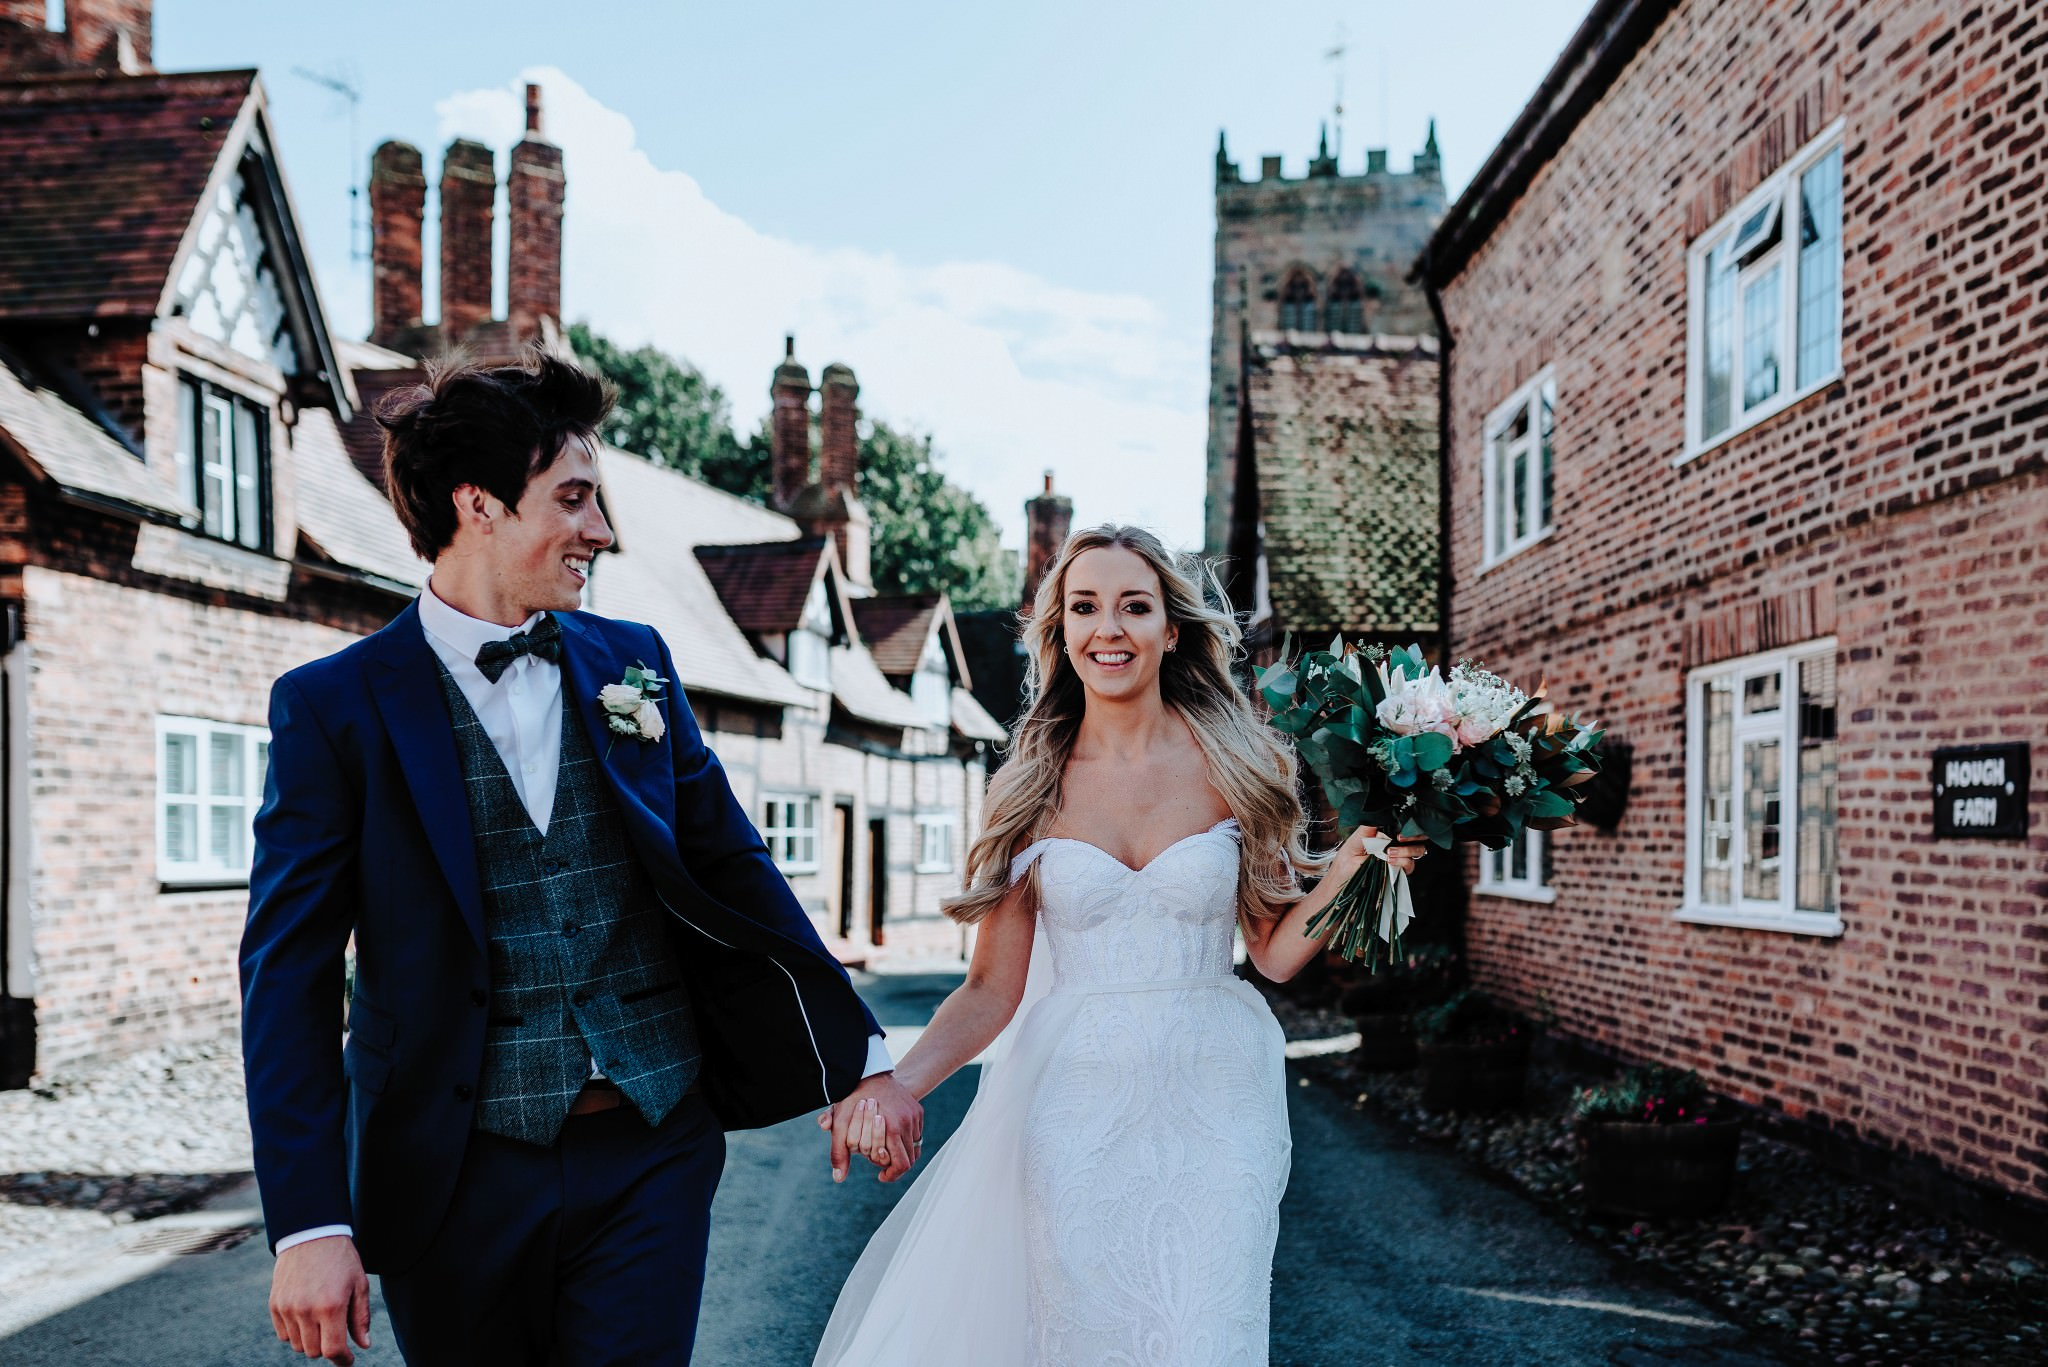 Bride and Groom portrait in Great Budworth in Cheshire